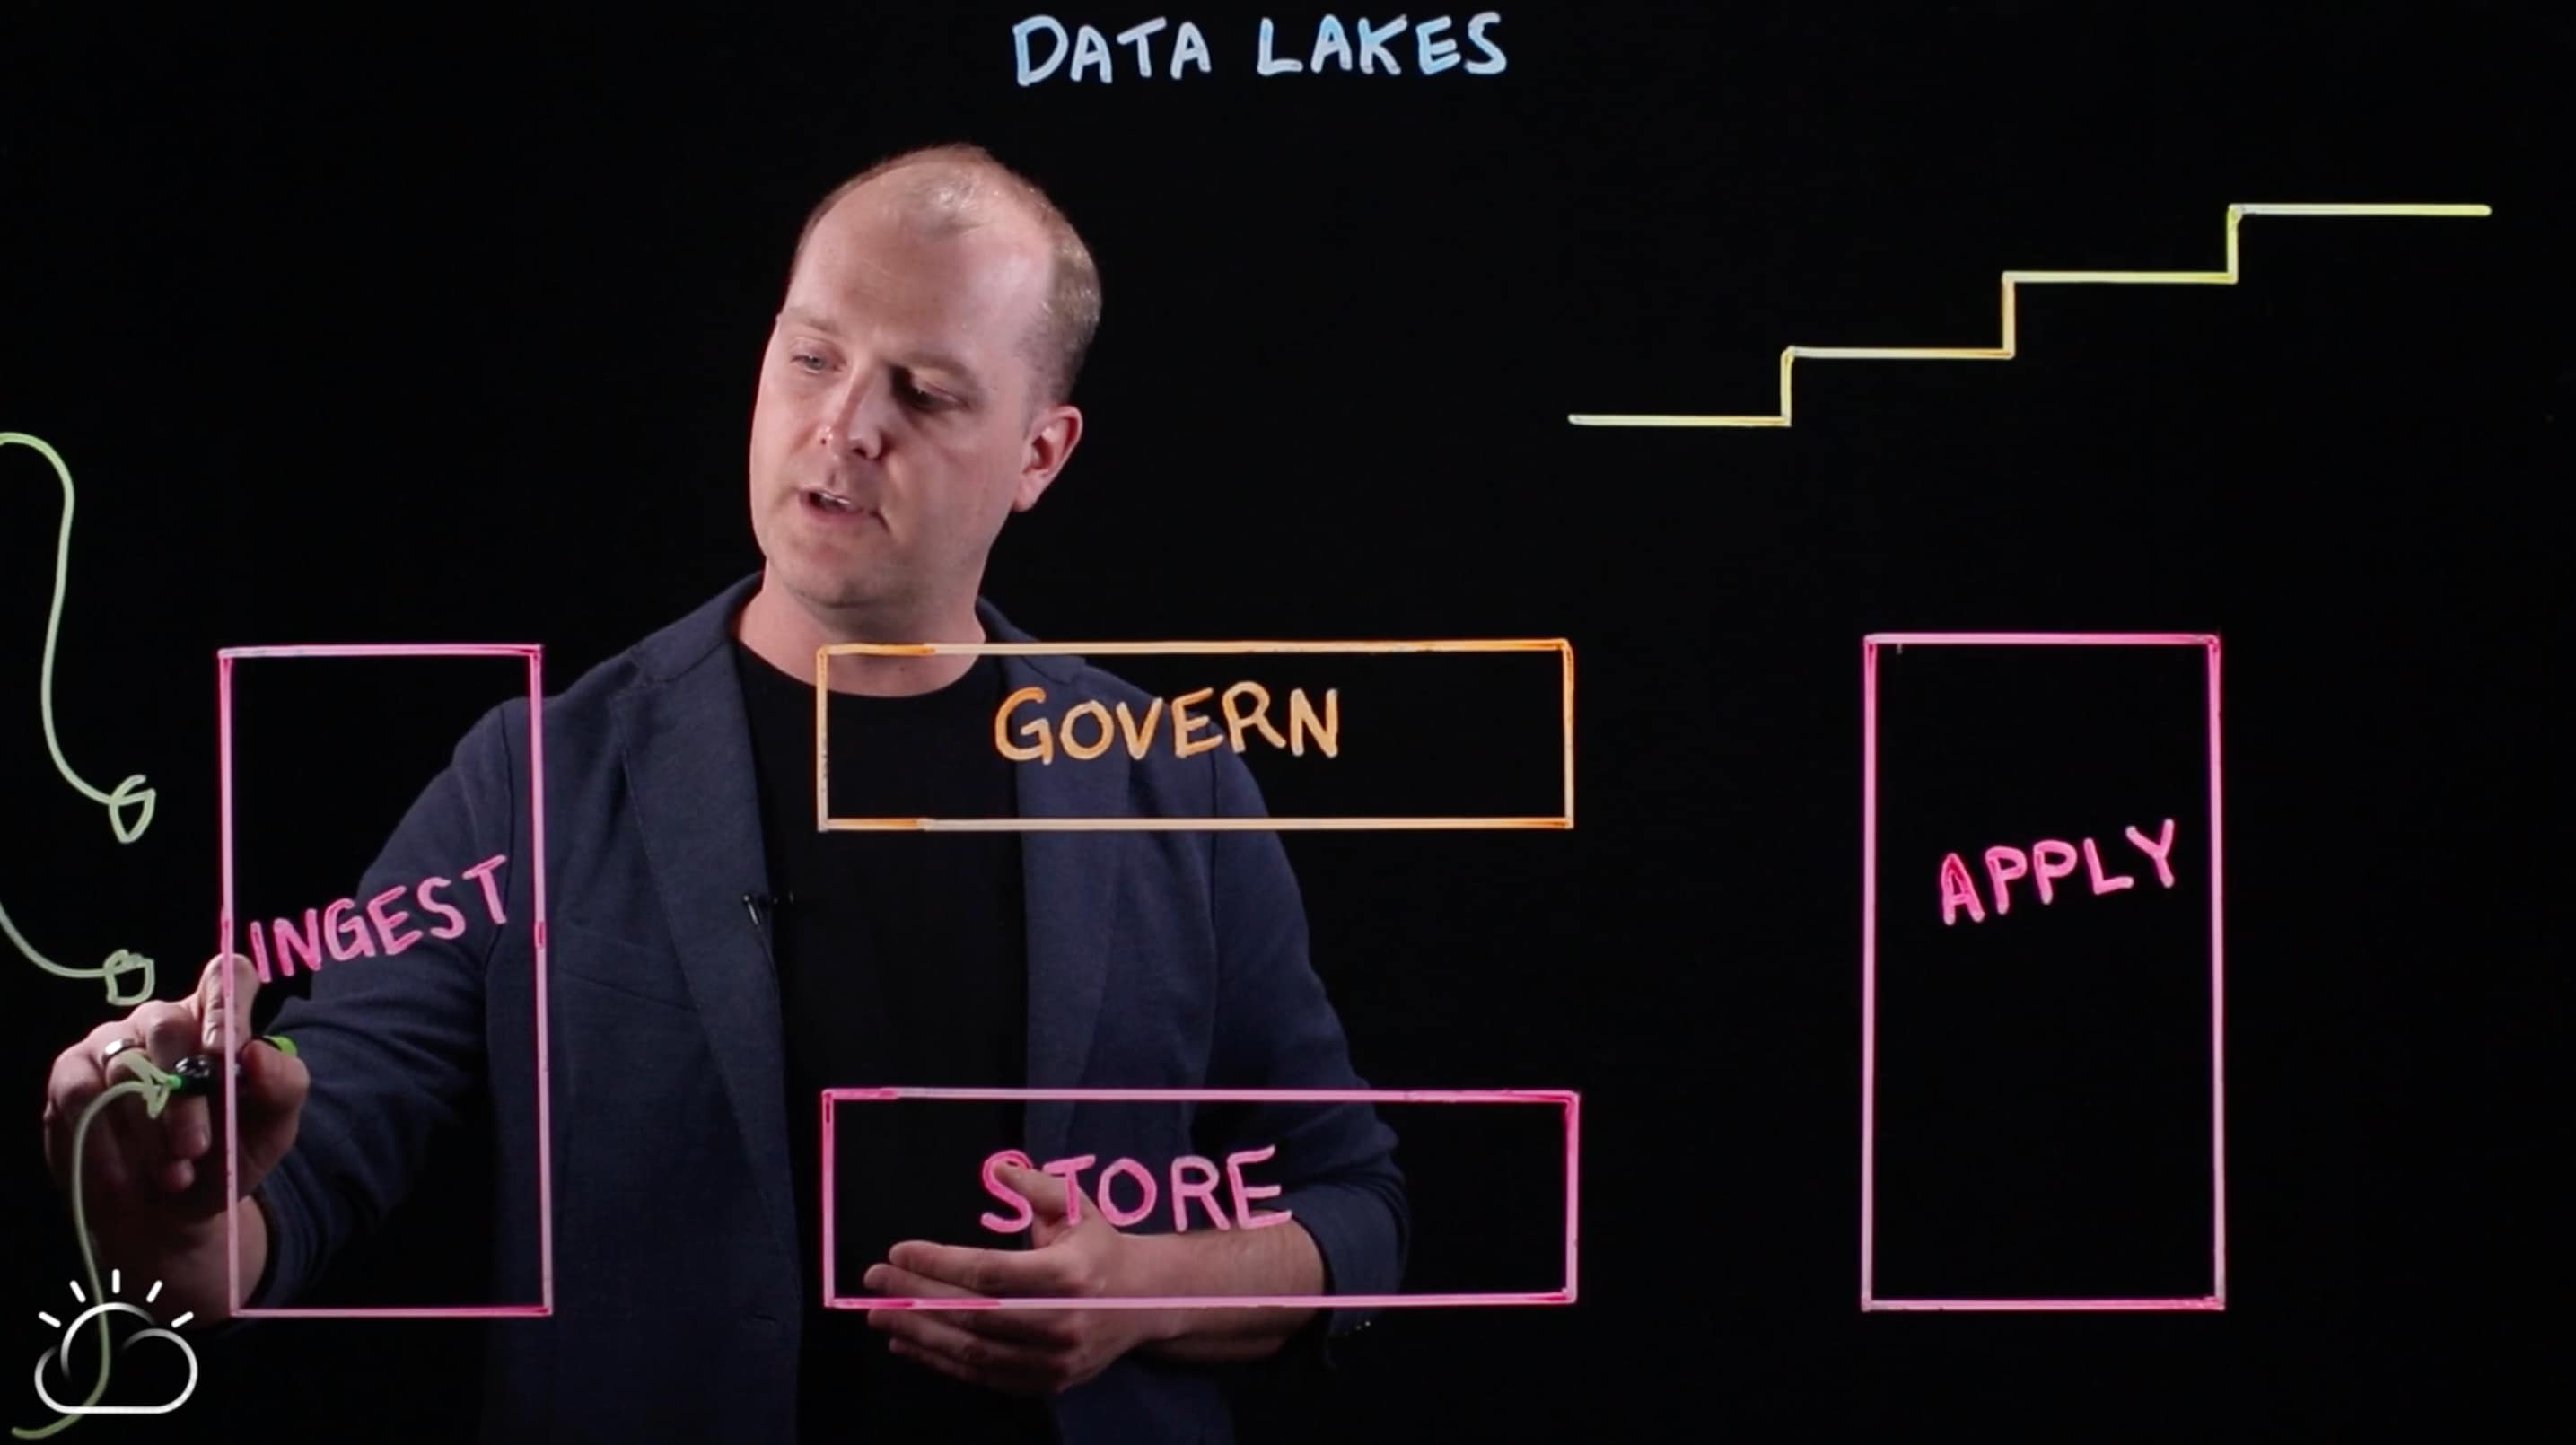 Data lakes and the influx of data sources